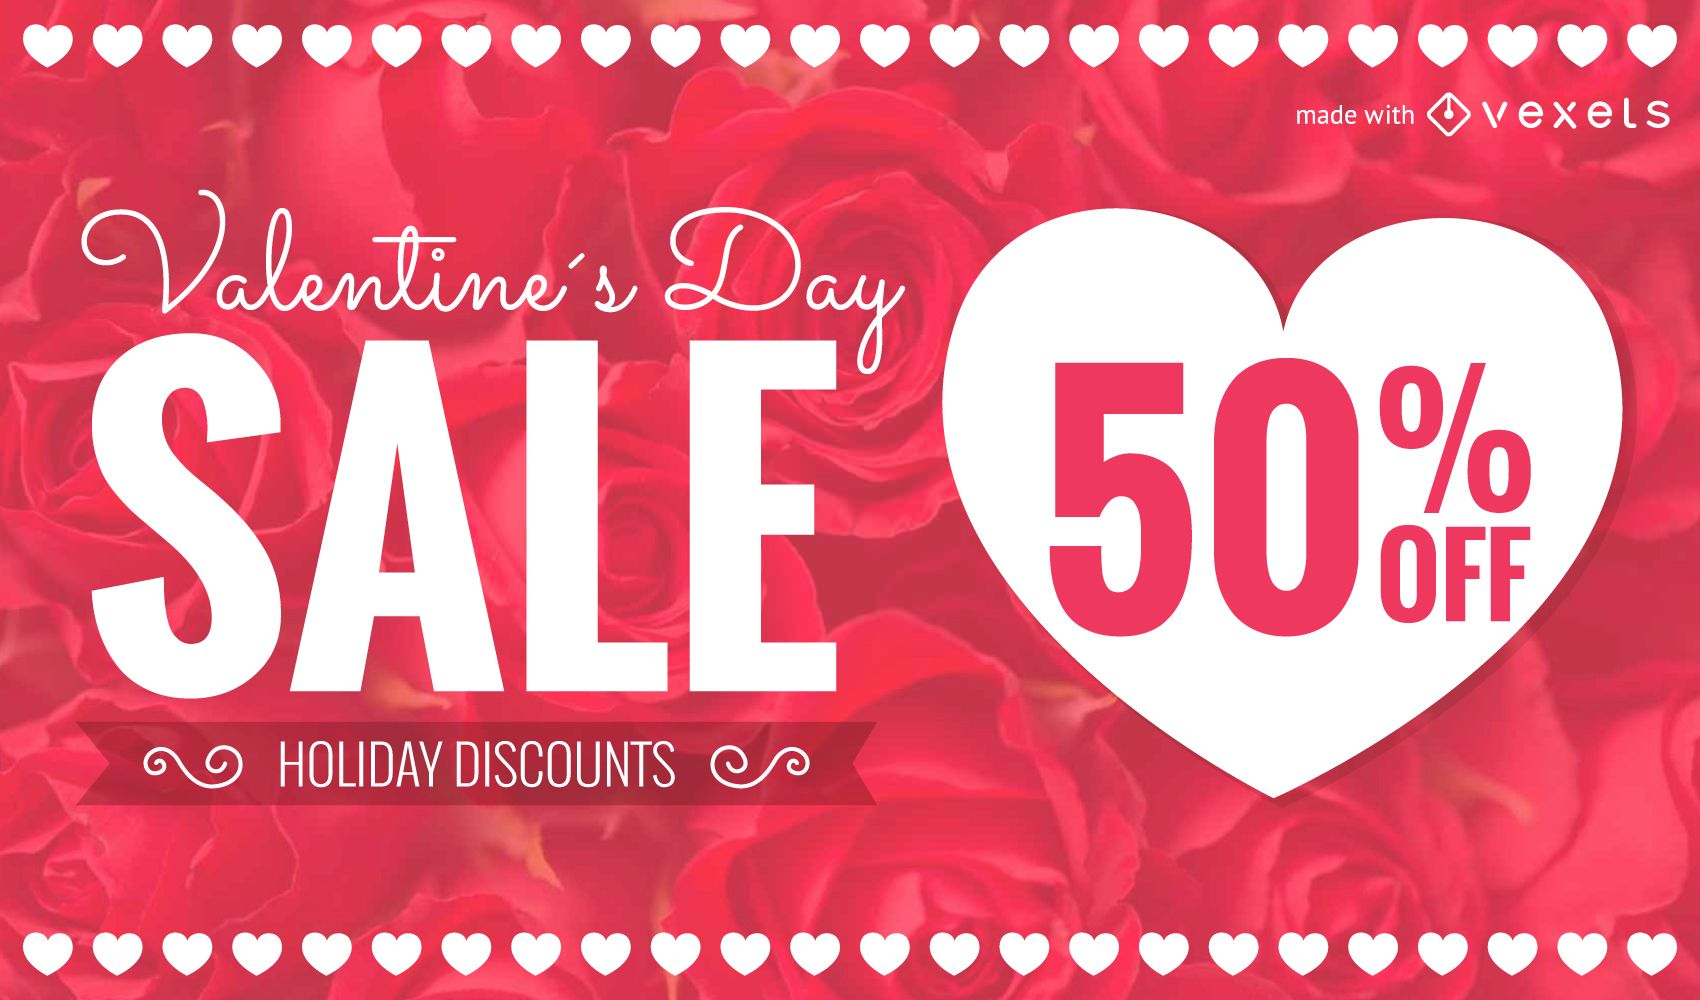 st valentines day sale promotion maker download large image 1700x1000px - Valentine Sale